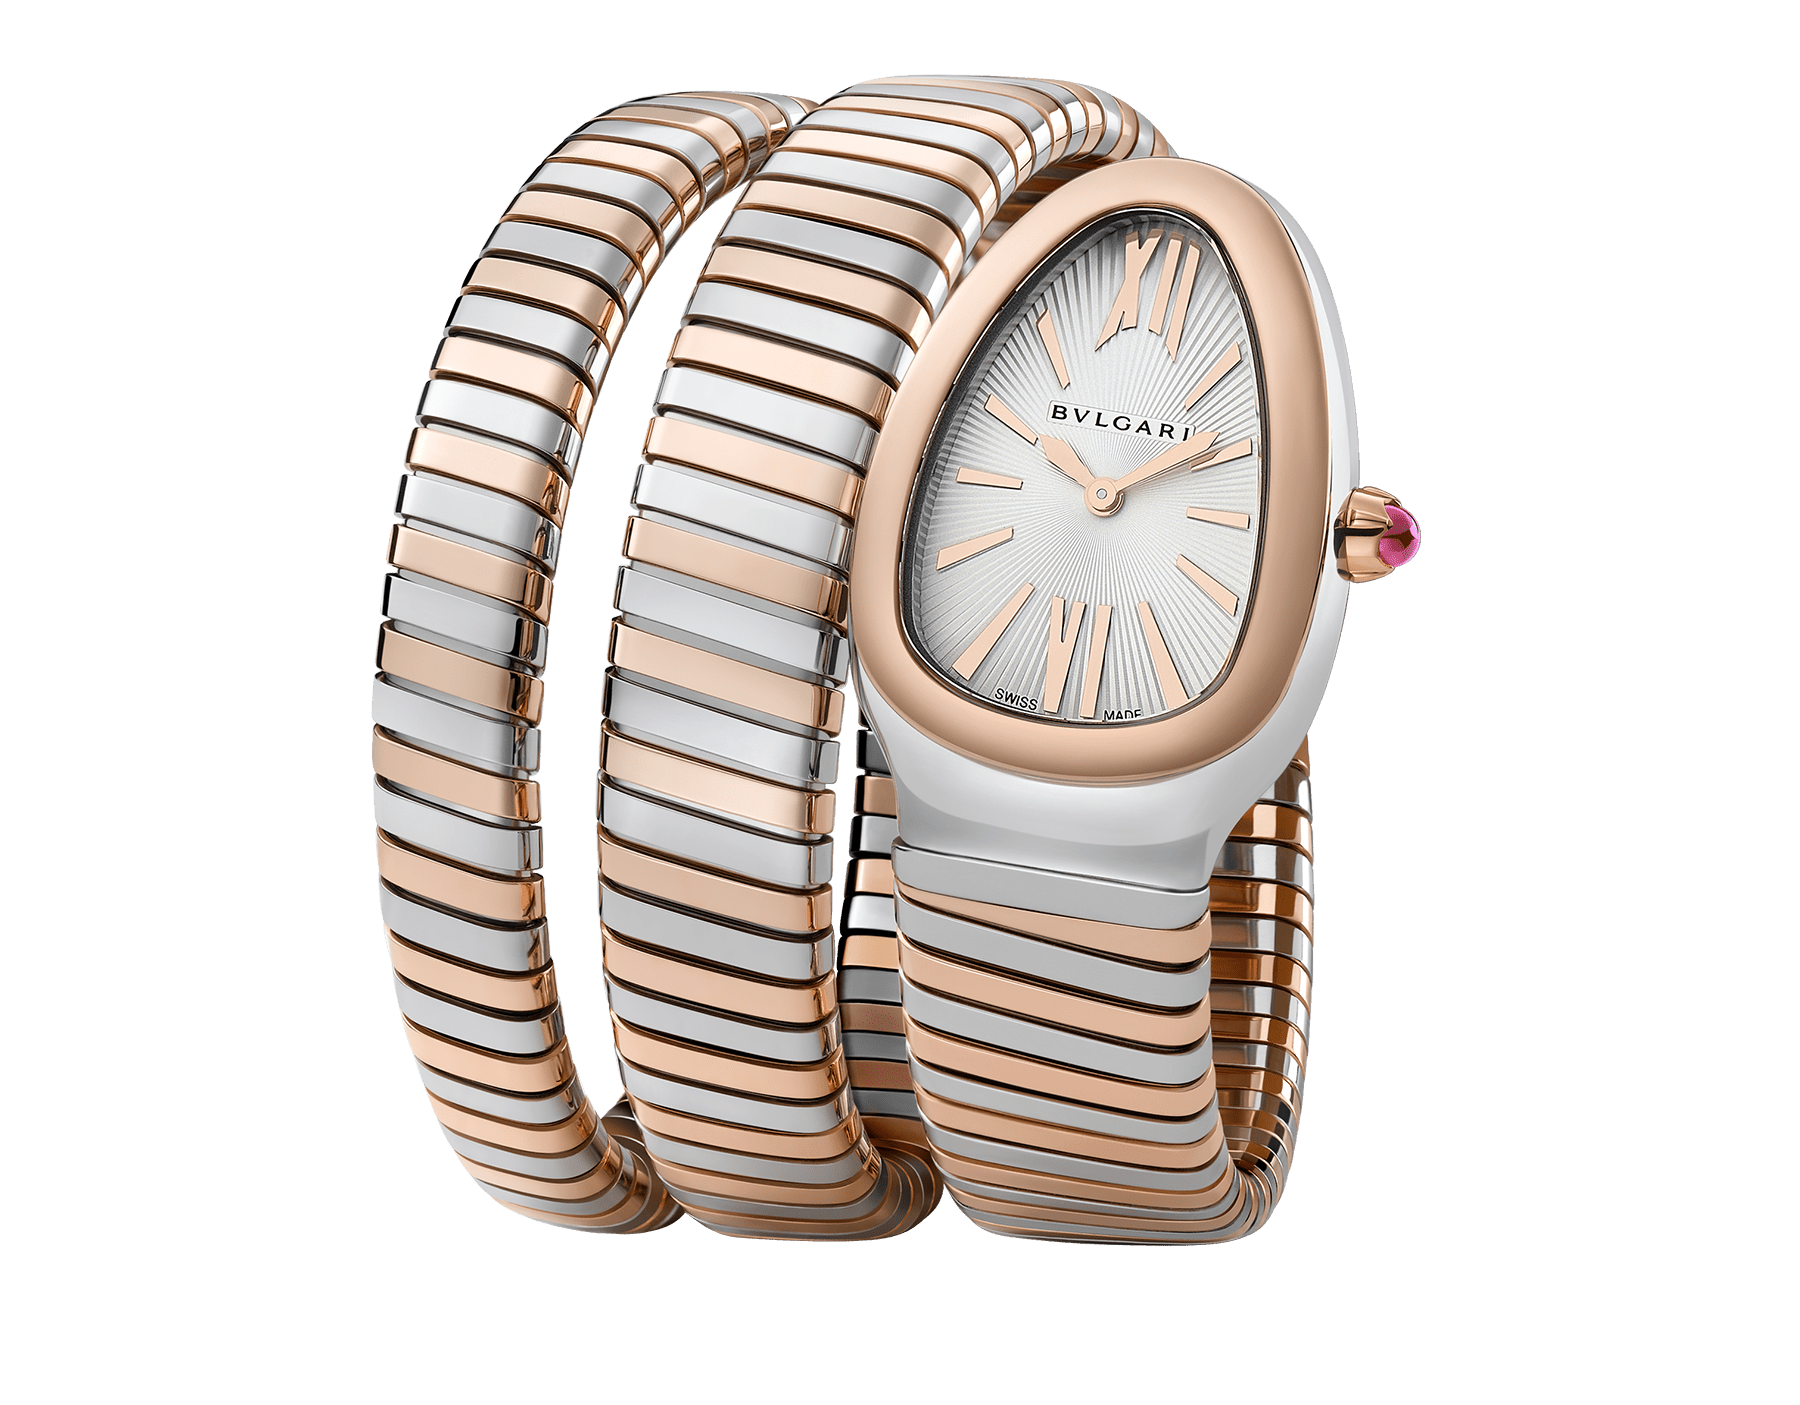 Serpenti Tubogas double spiral watch in 18 kt rose gold and stainless steel case and bracelet, with silver opaline dial. 102236 image 1